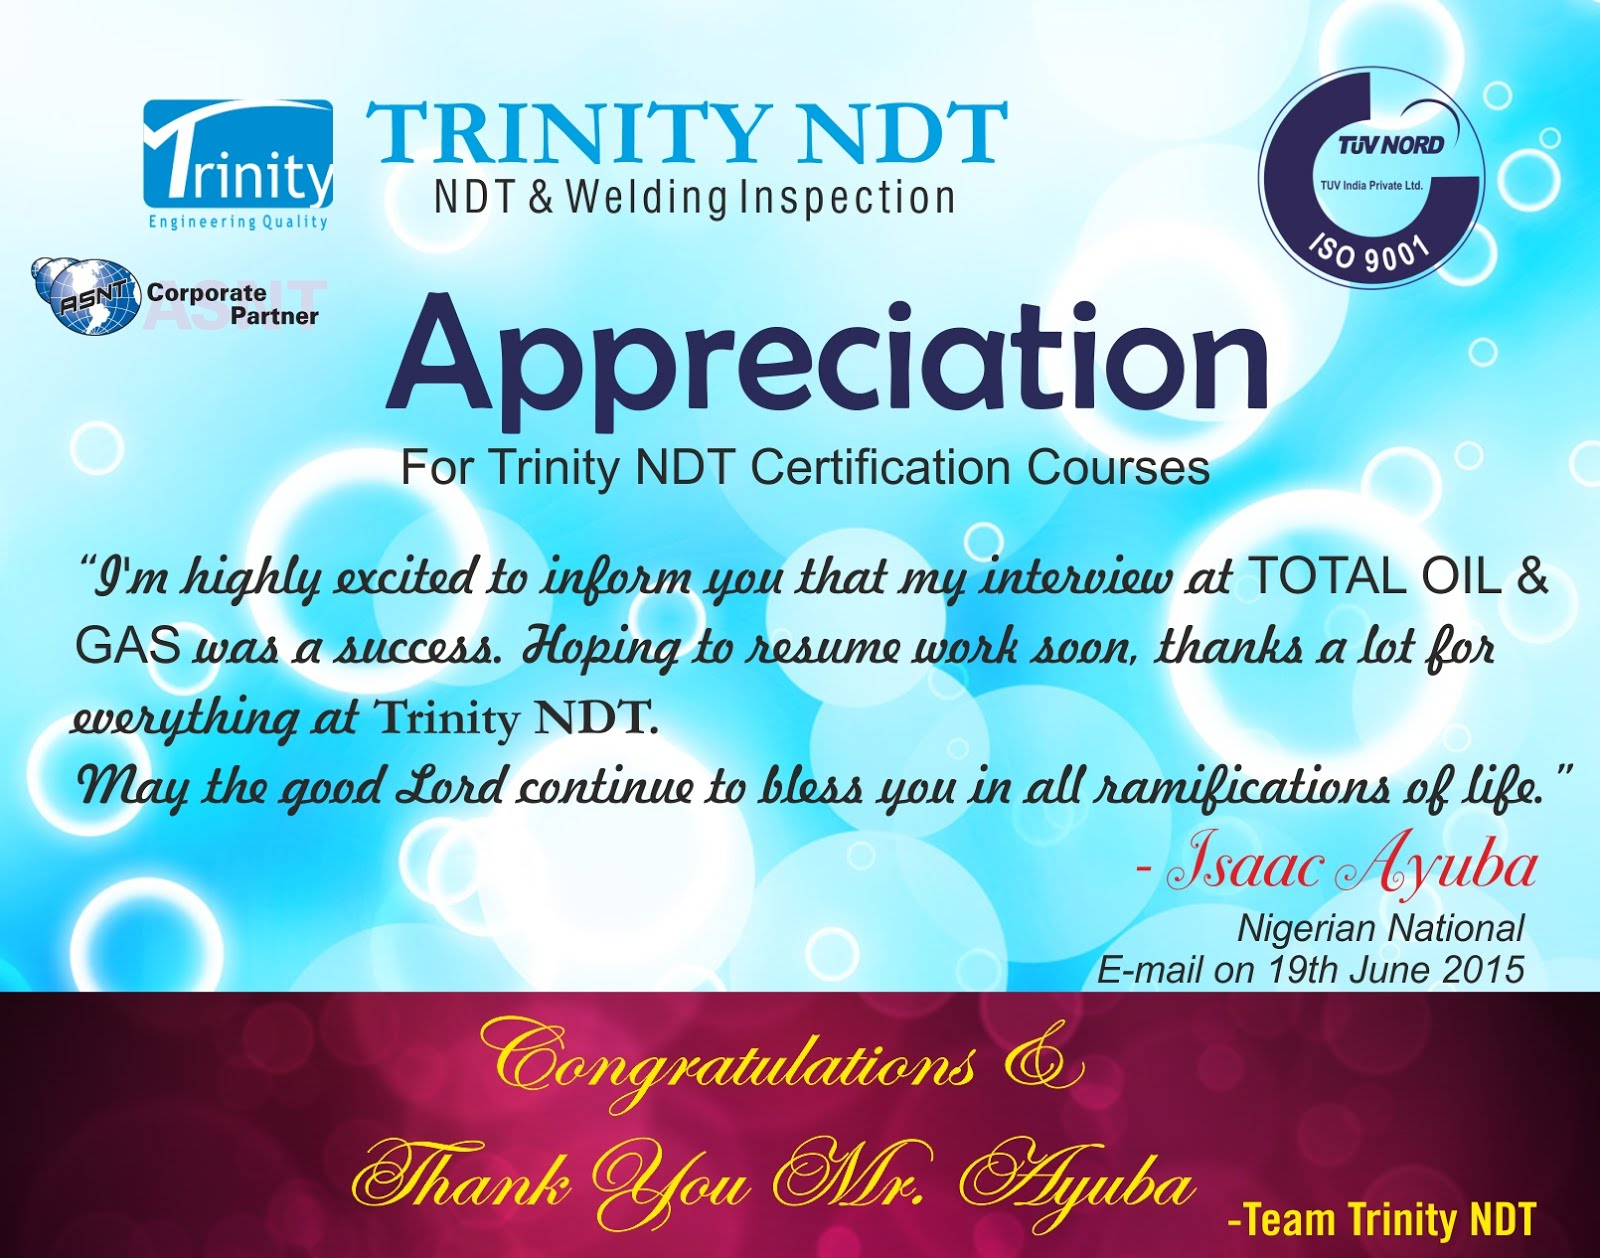 Appreciation for Trinity NDT Courses